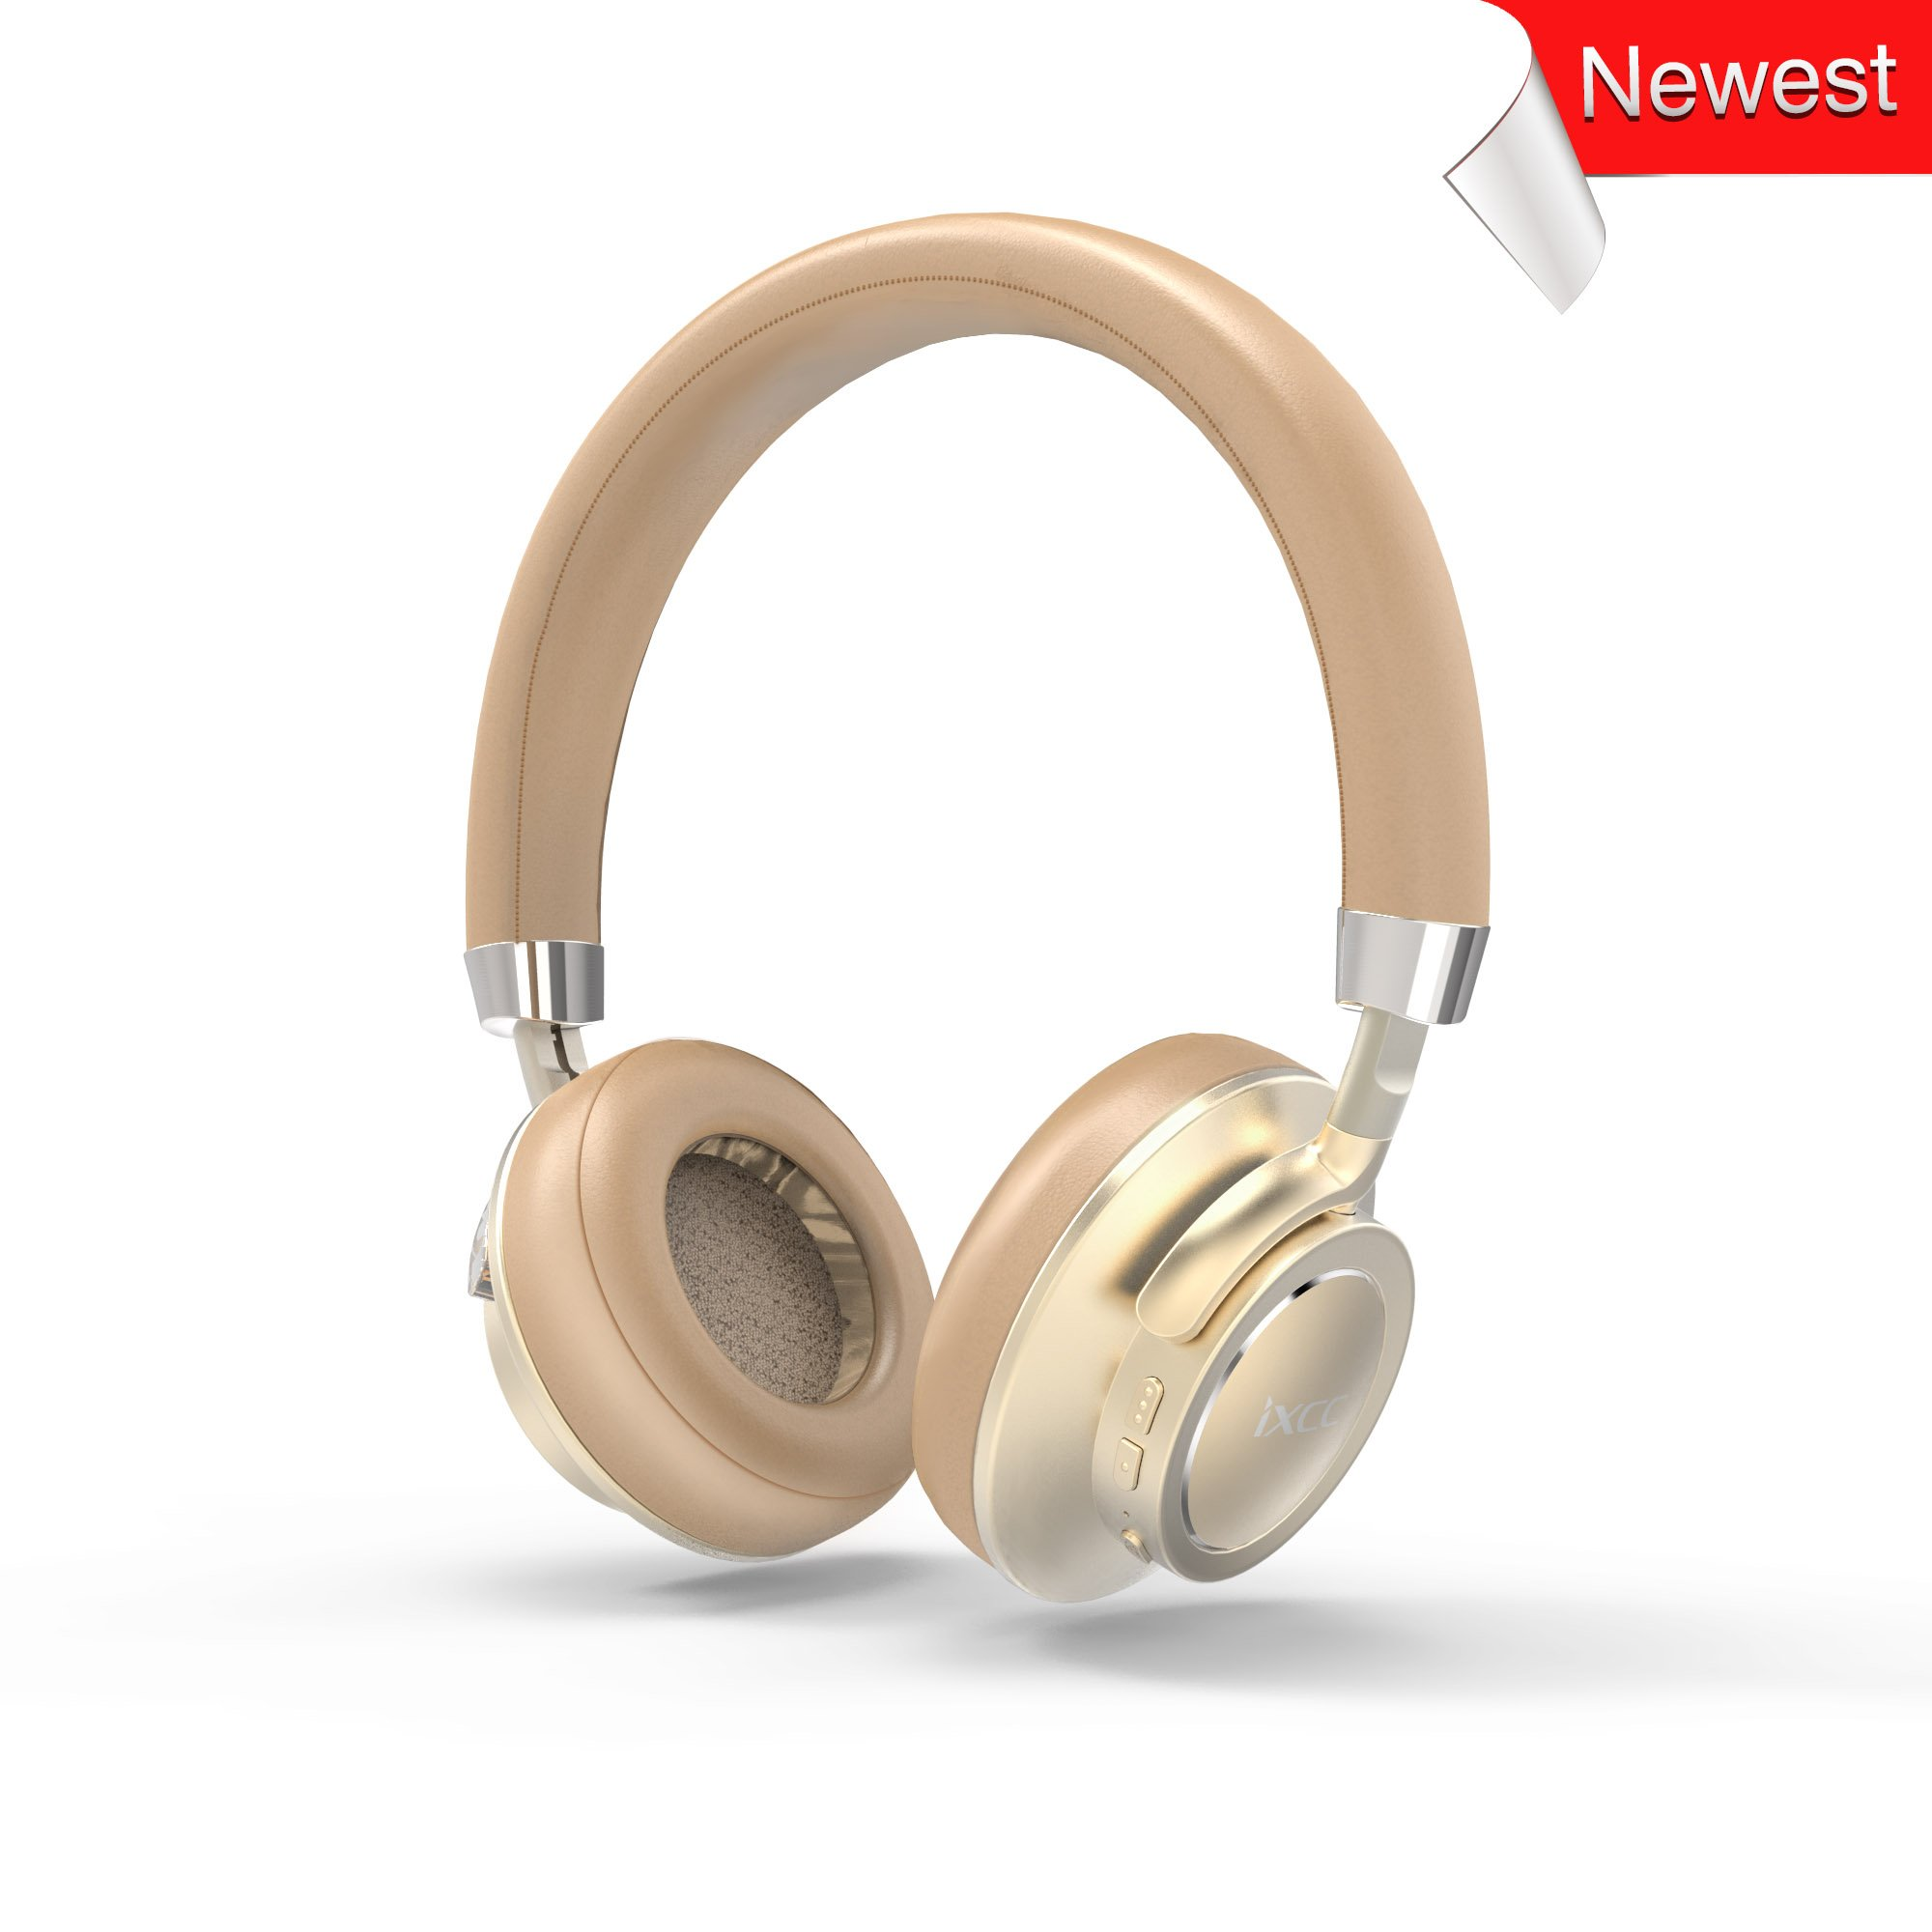 iXCC 17 Hrs Bluetooth V4.1 On-Ear Headphones with Mic, Hi-Fi Stereo Low Latency Wireless Headset, Soft Memory-Protein Earmuffs, and Wired Mode for PC/Cell Phones/TV - Gold